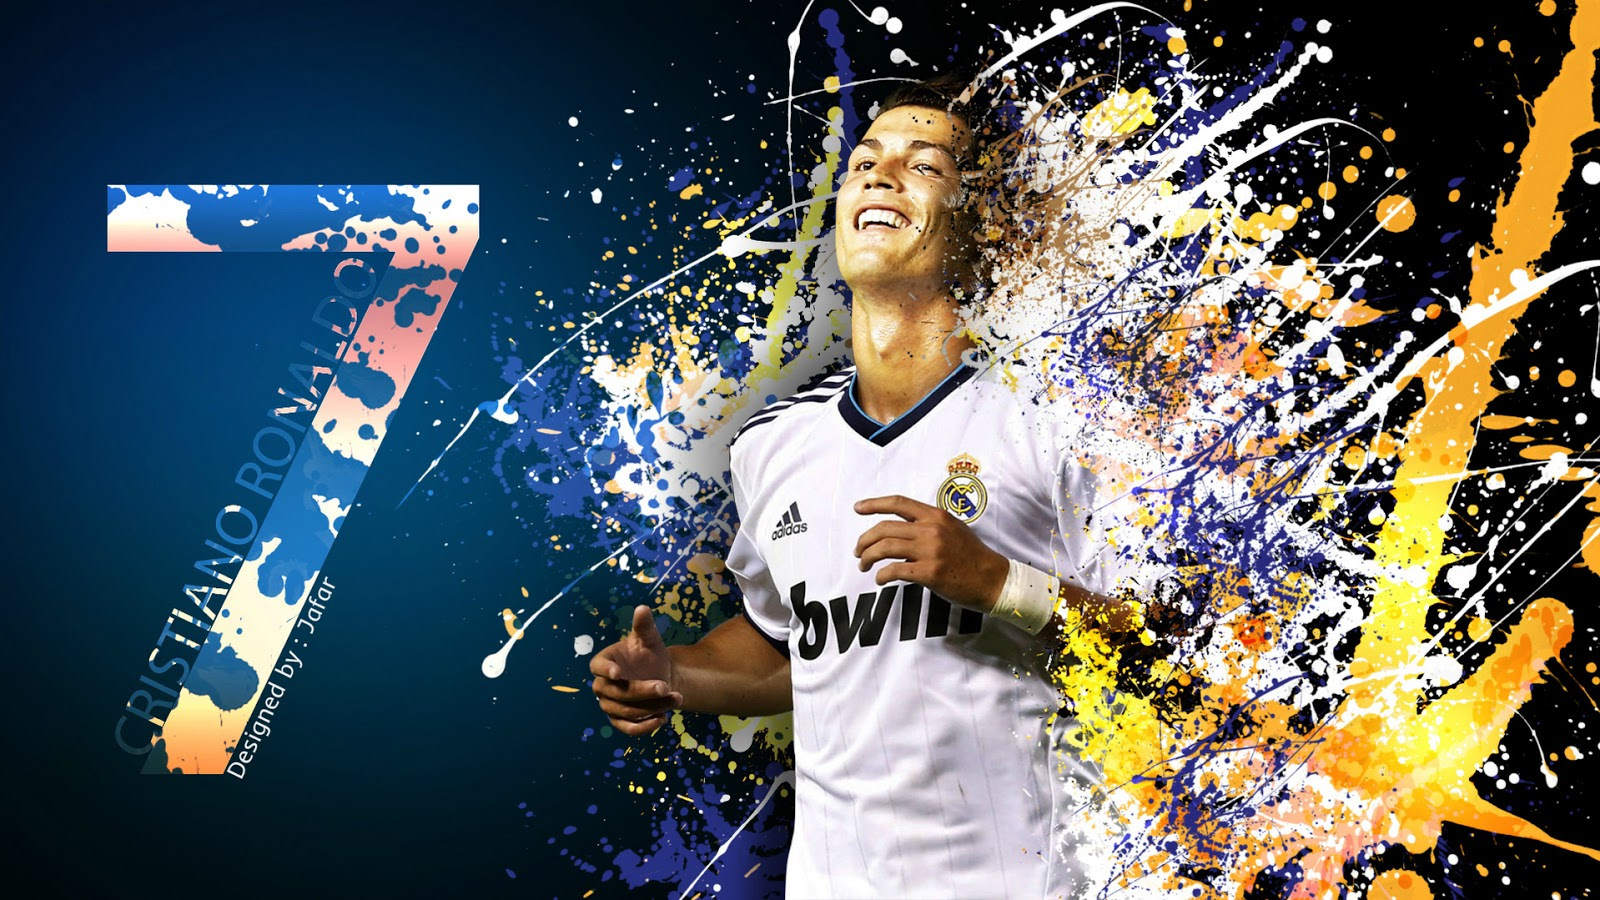 ALL SPORTS PLAYERS: Cristiano Ronaldo hd Wallpapers 2013